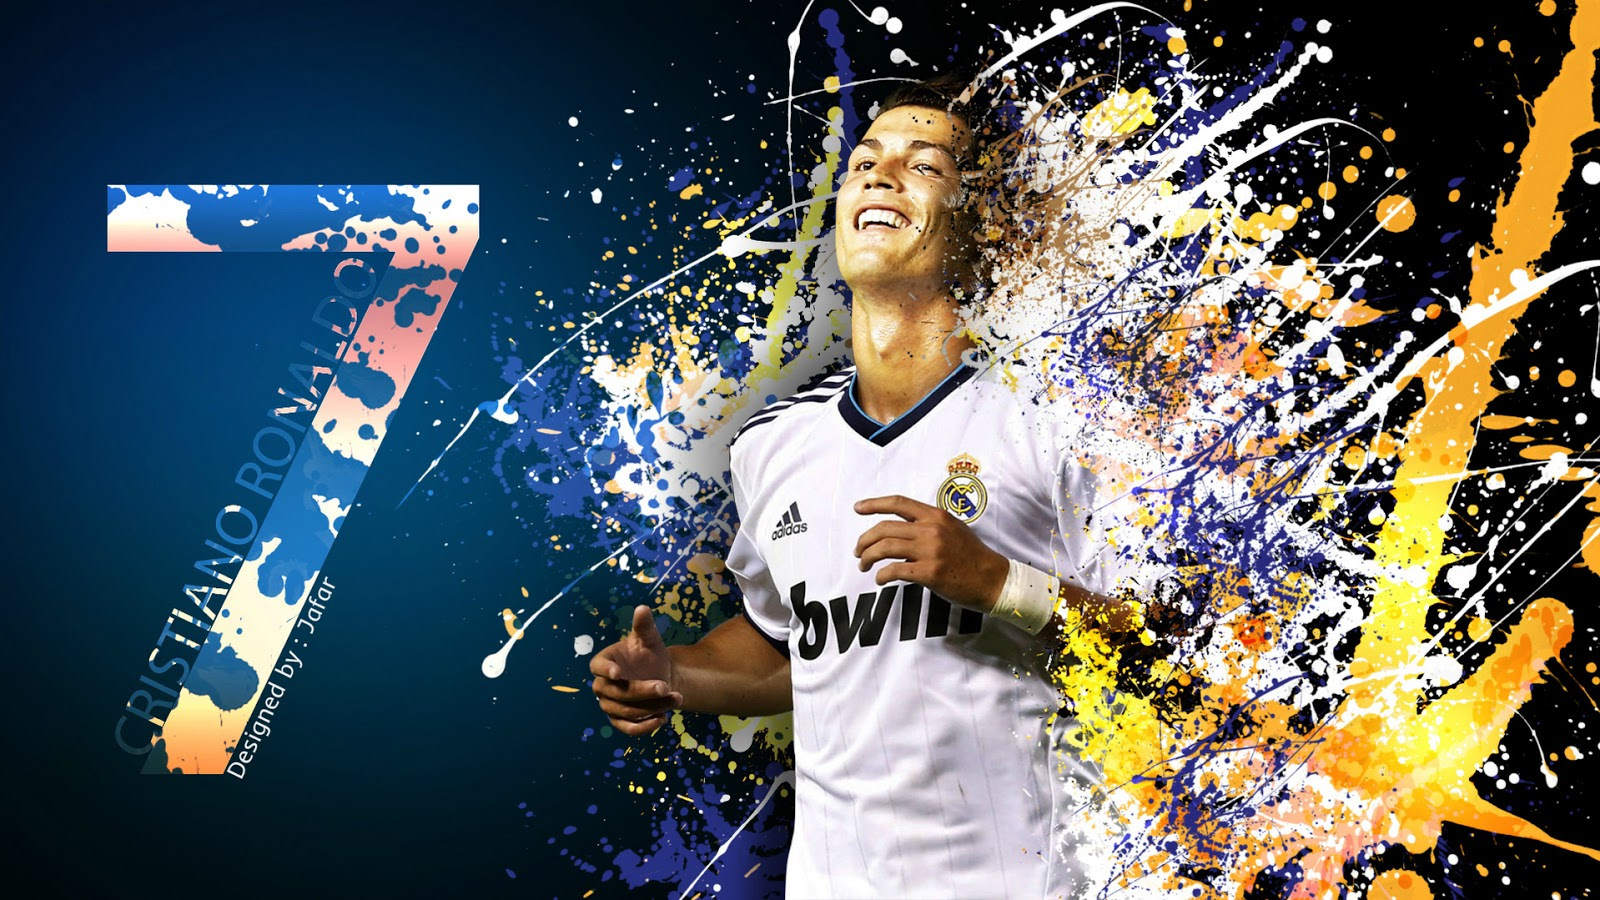 ALL SPORTS PLAYERS: Cristiano Ronaldo hd Wallpapers 2013